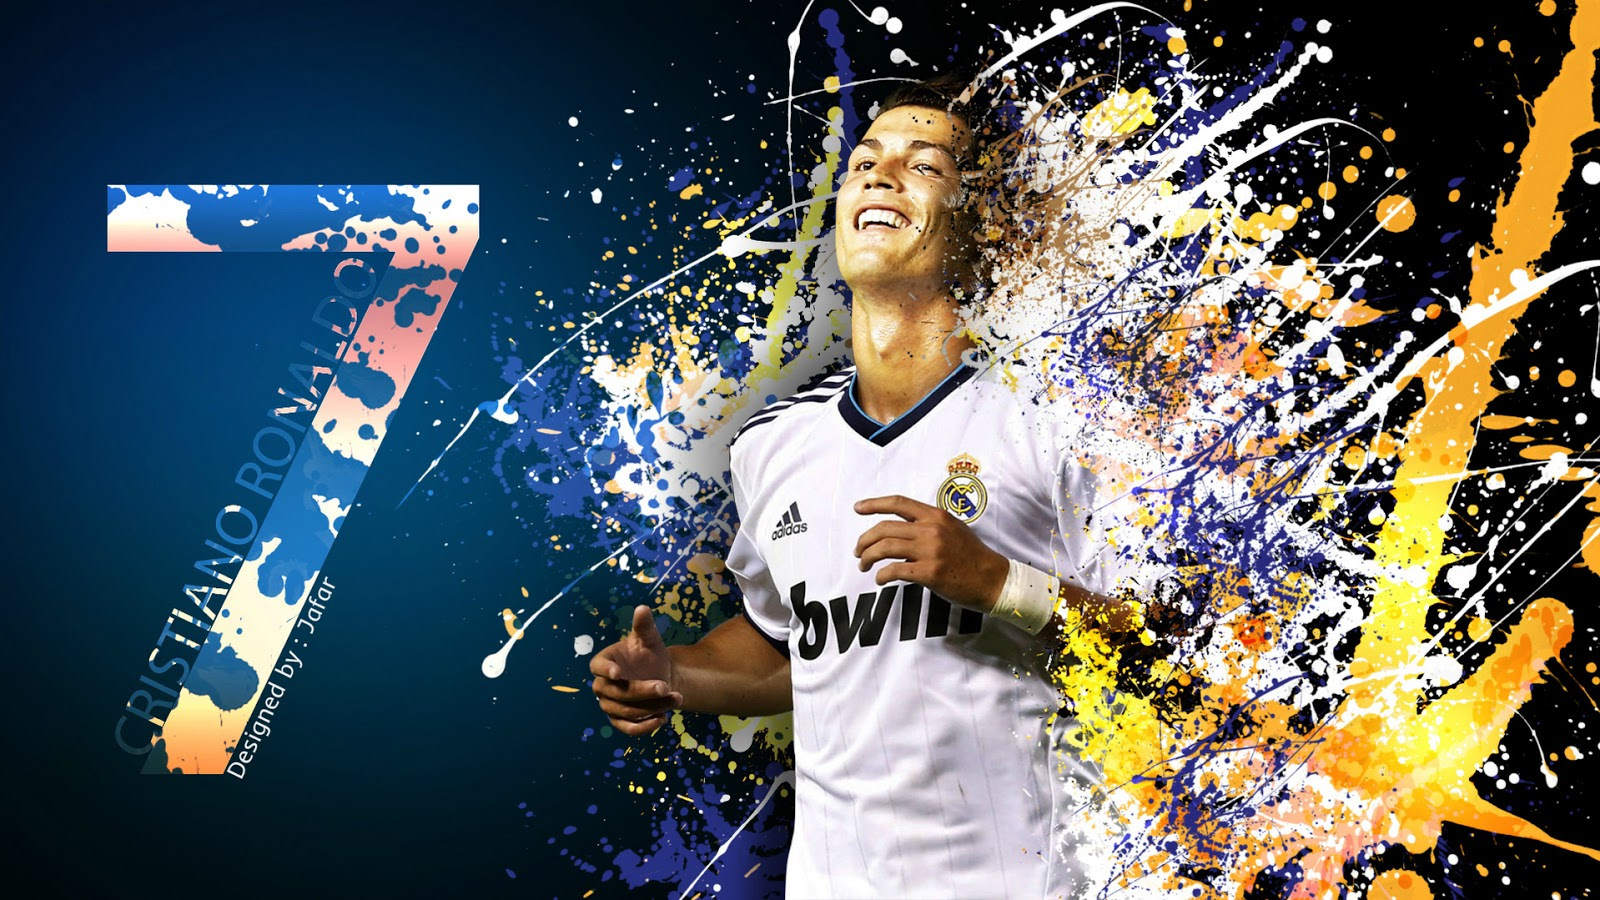 ALL SPORTS PLAYERS: Cristiano Ronaldo hd Wallpapers 2013